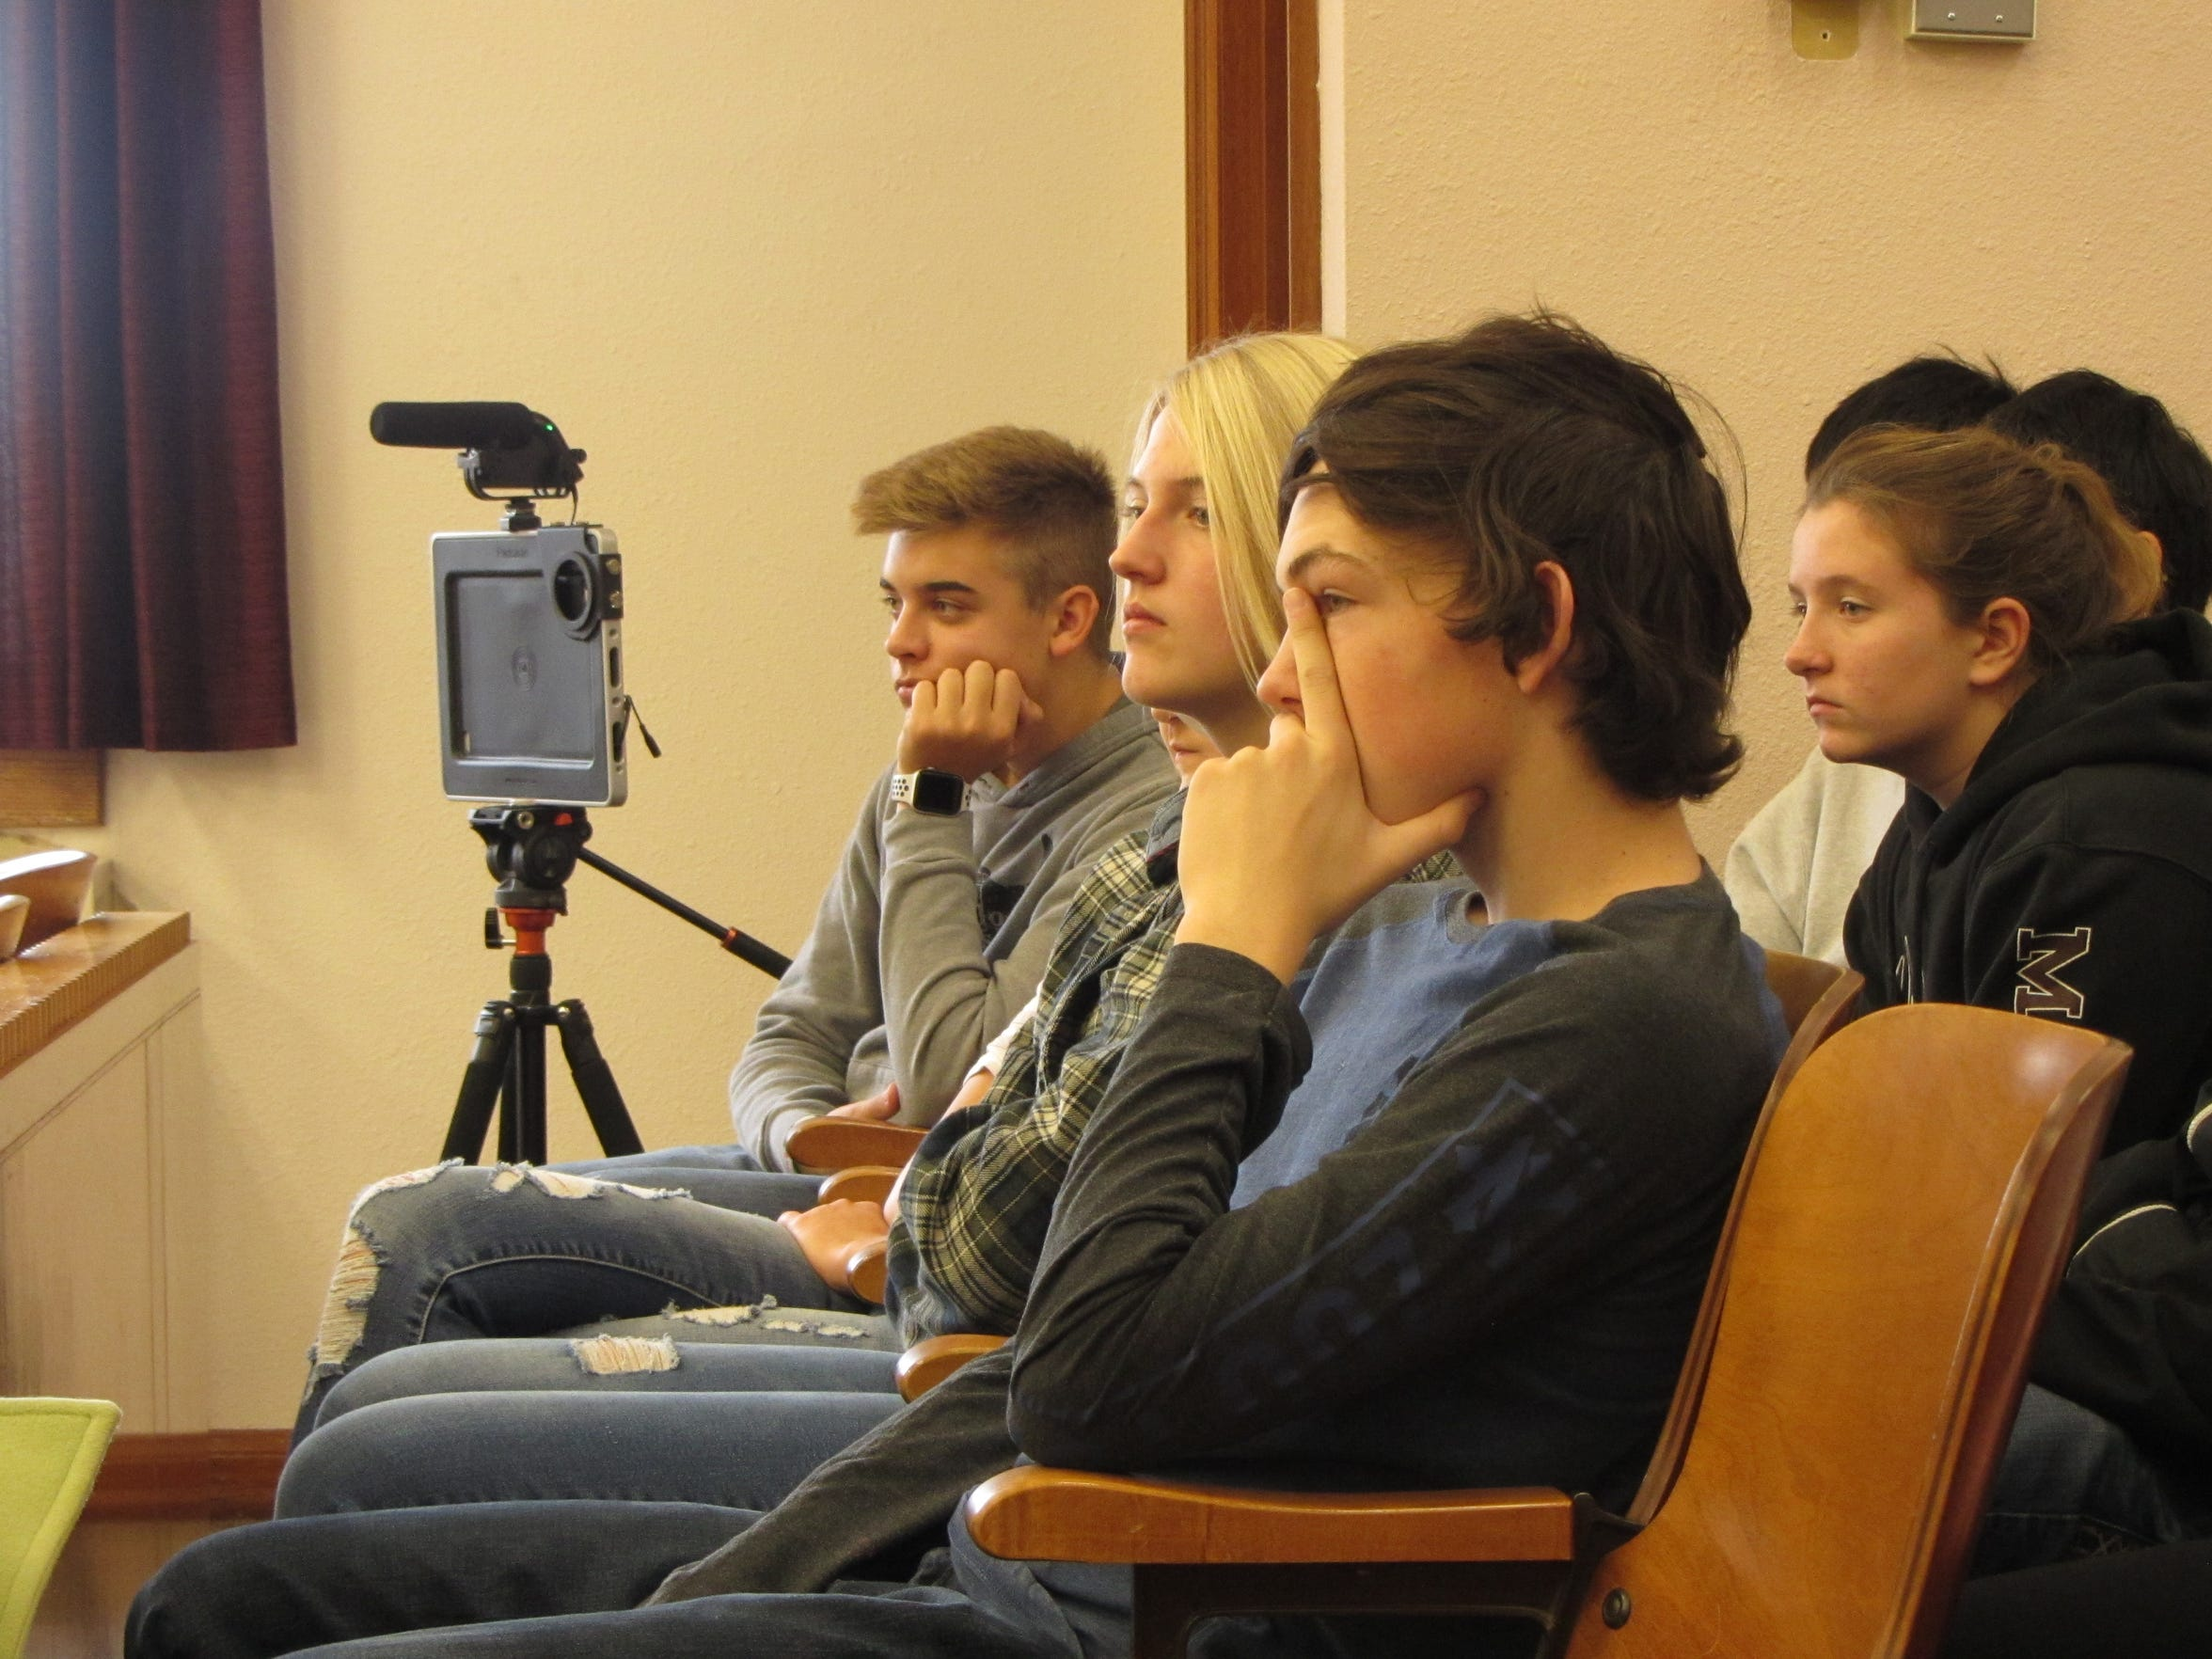 Audience members watch as classmate Mark Doty is tried for vehicular homicide while under the influence as part of Conrad's Ghost Out event.